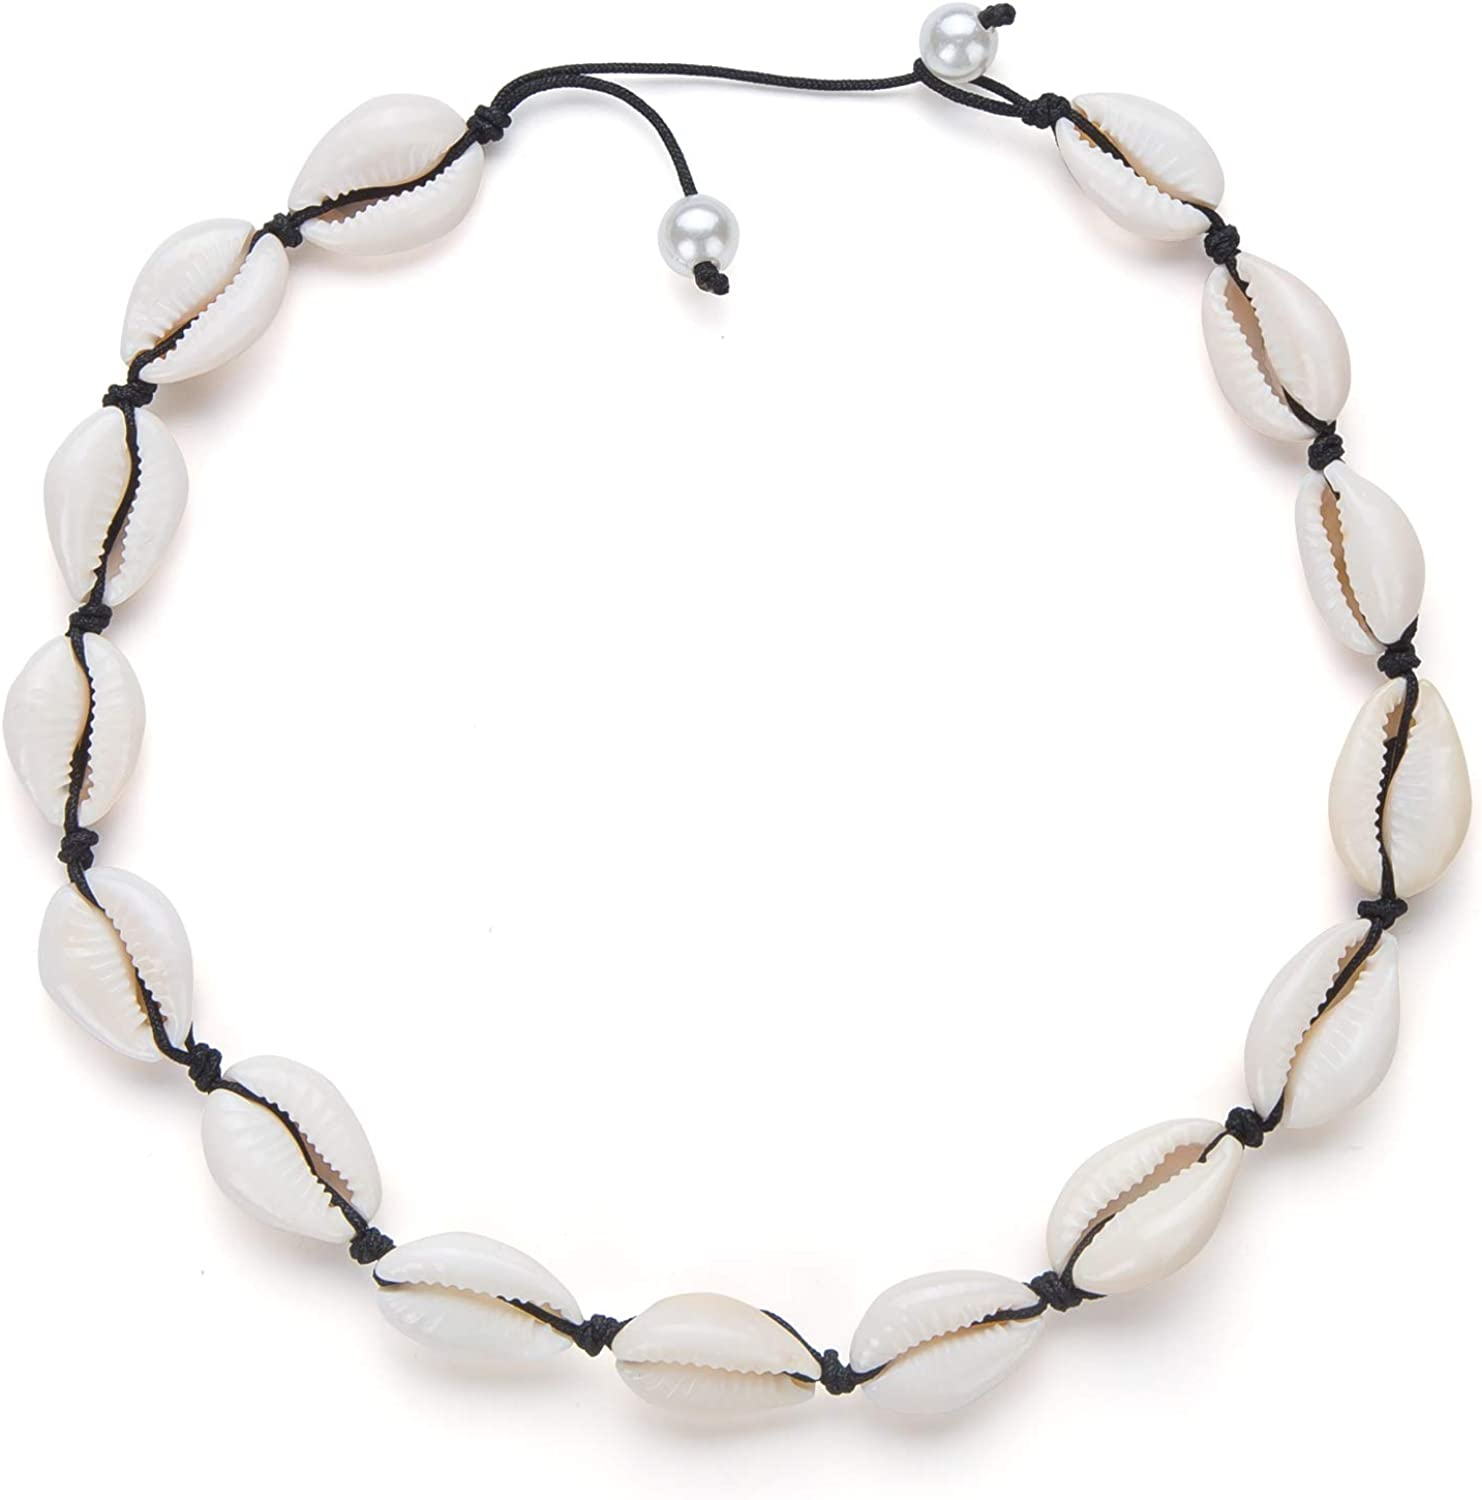 seashell jewelry Summer fashion necklace Beach White silver shell choker Wedding necklace Bib necklace cowrie cover Party Jewelry.